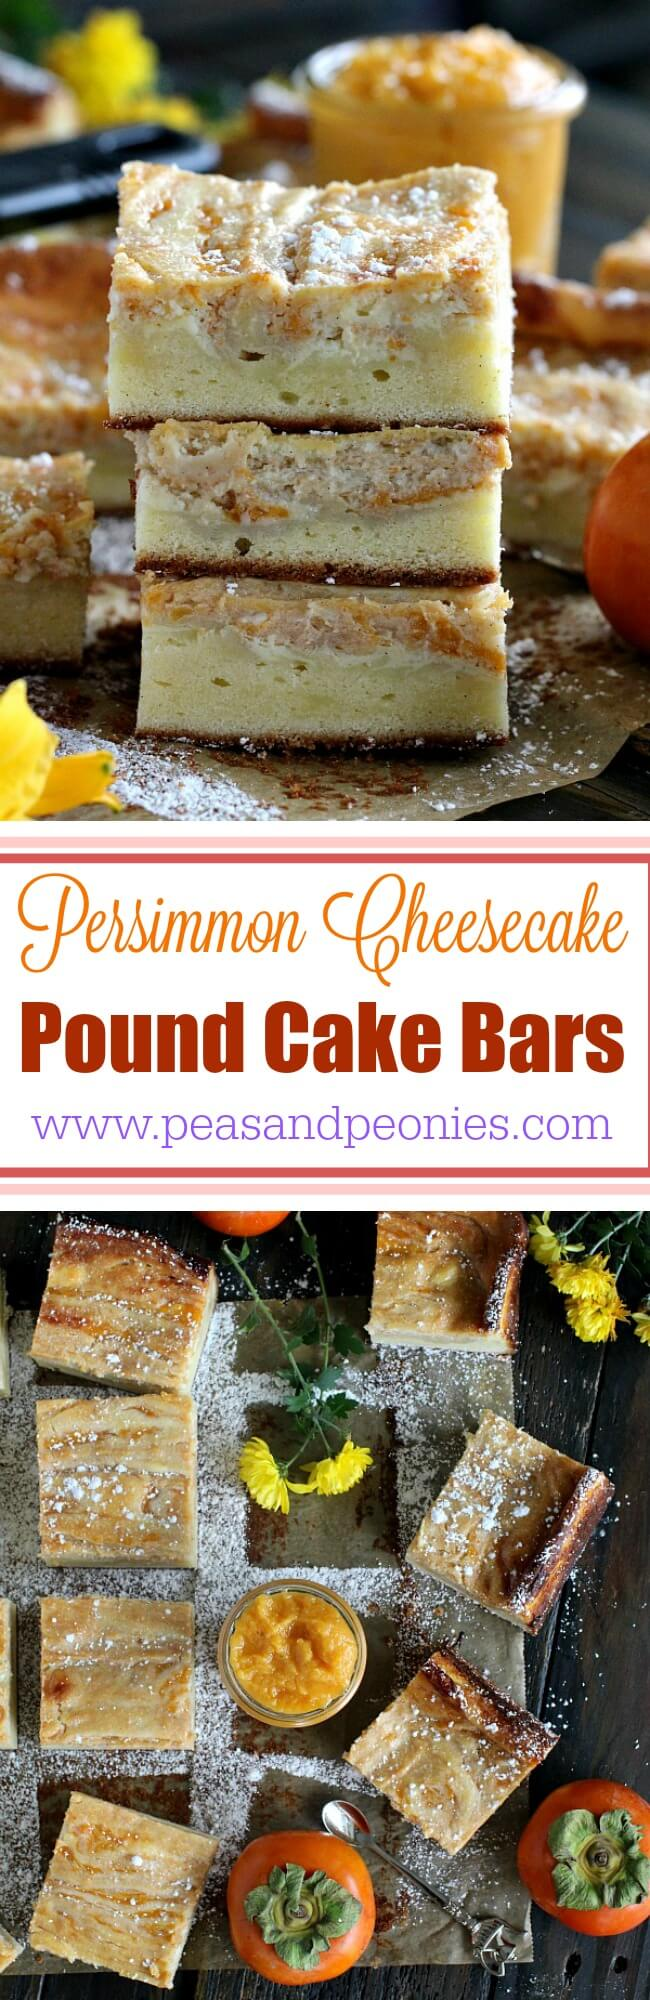 Two classic desserts are combined into these creamy and flavorful Persimmon Cheesecake Pound Cake Bars that make one decadent and irresistible dessert. A layer of pound cake, topped with  Cheesecake and persimmon jam swirls.